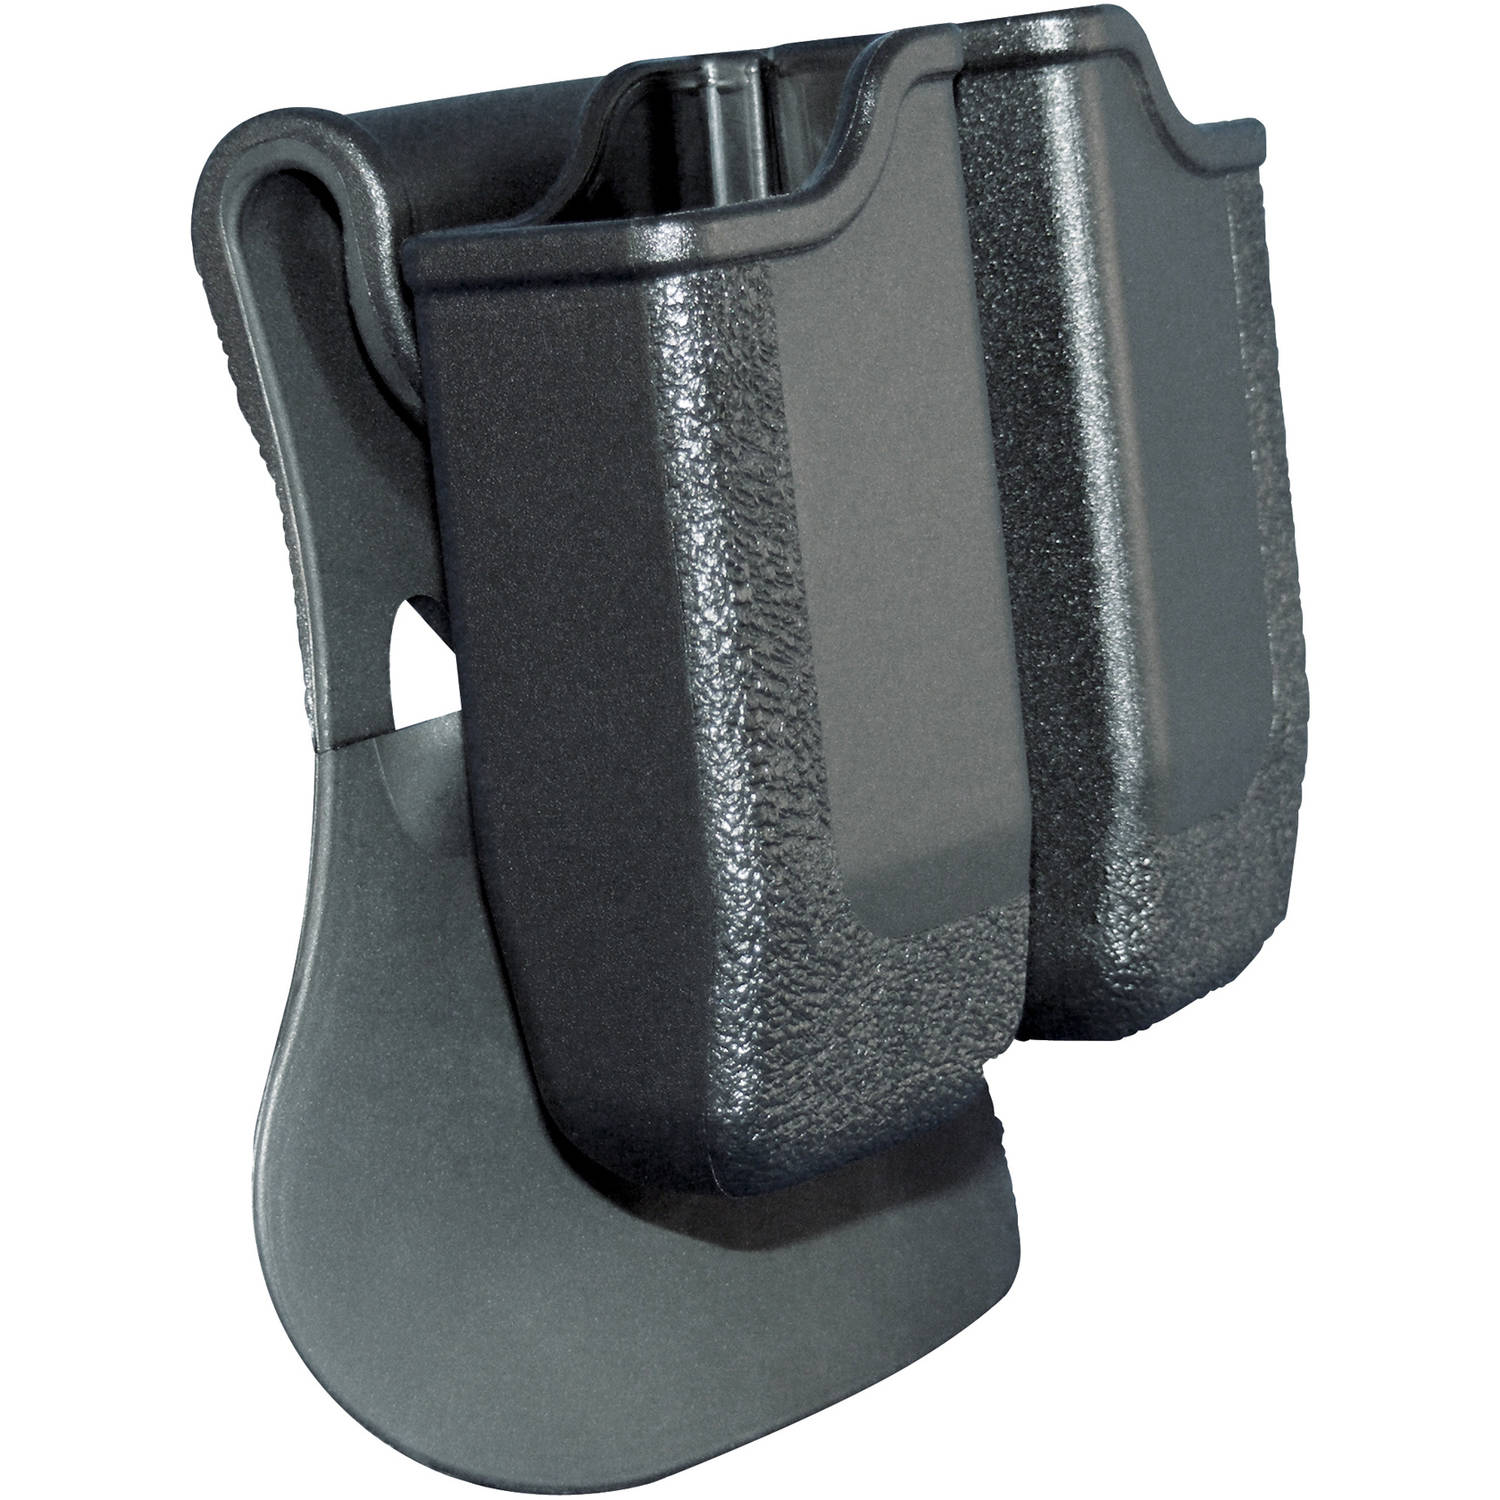 Sig Sauer Double Magazine Pouch, Fits P226, Black